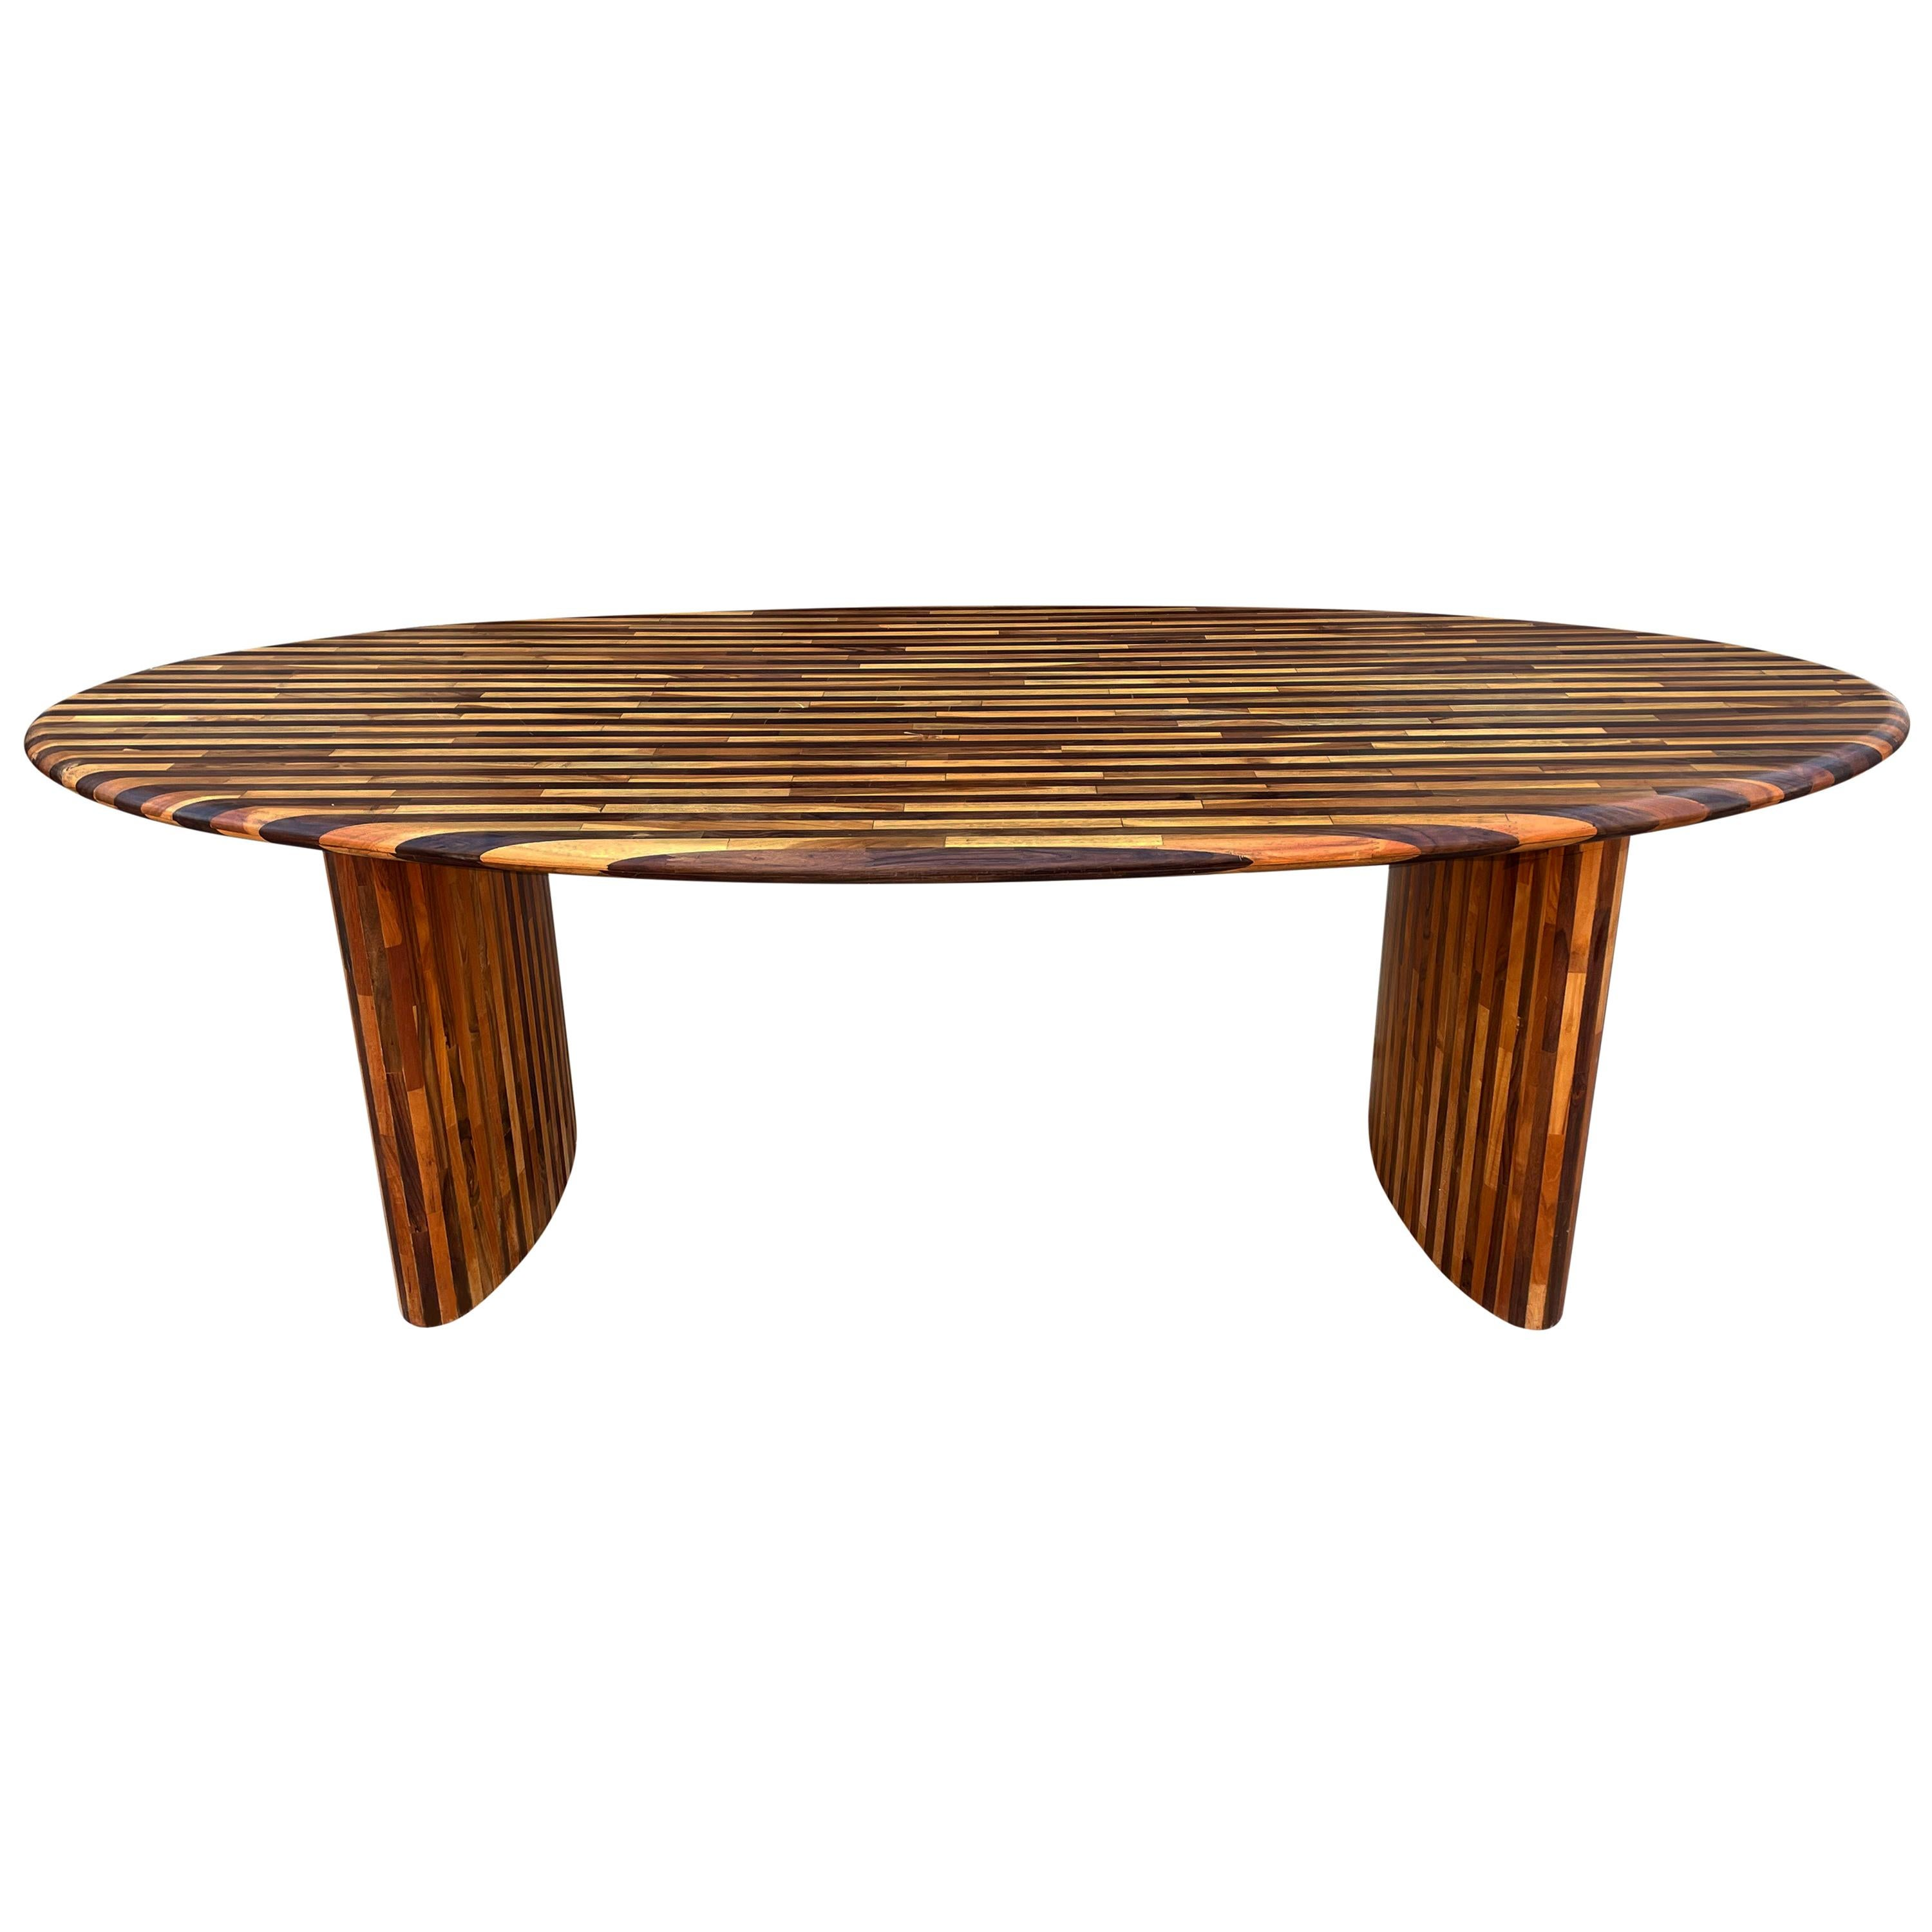 Midcentury Danish Modern Oval Surfboard Dining Table in Rosewood and Teak